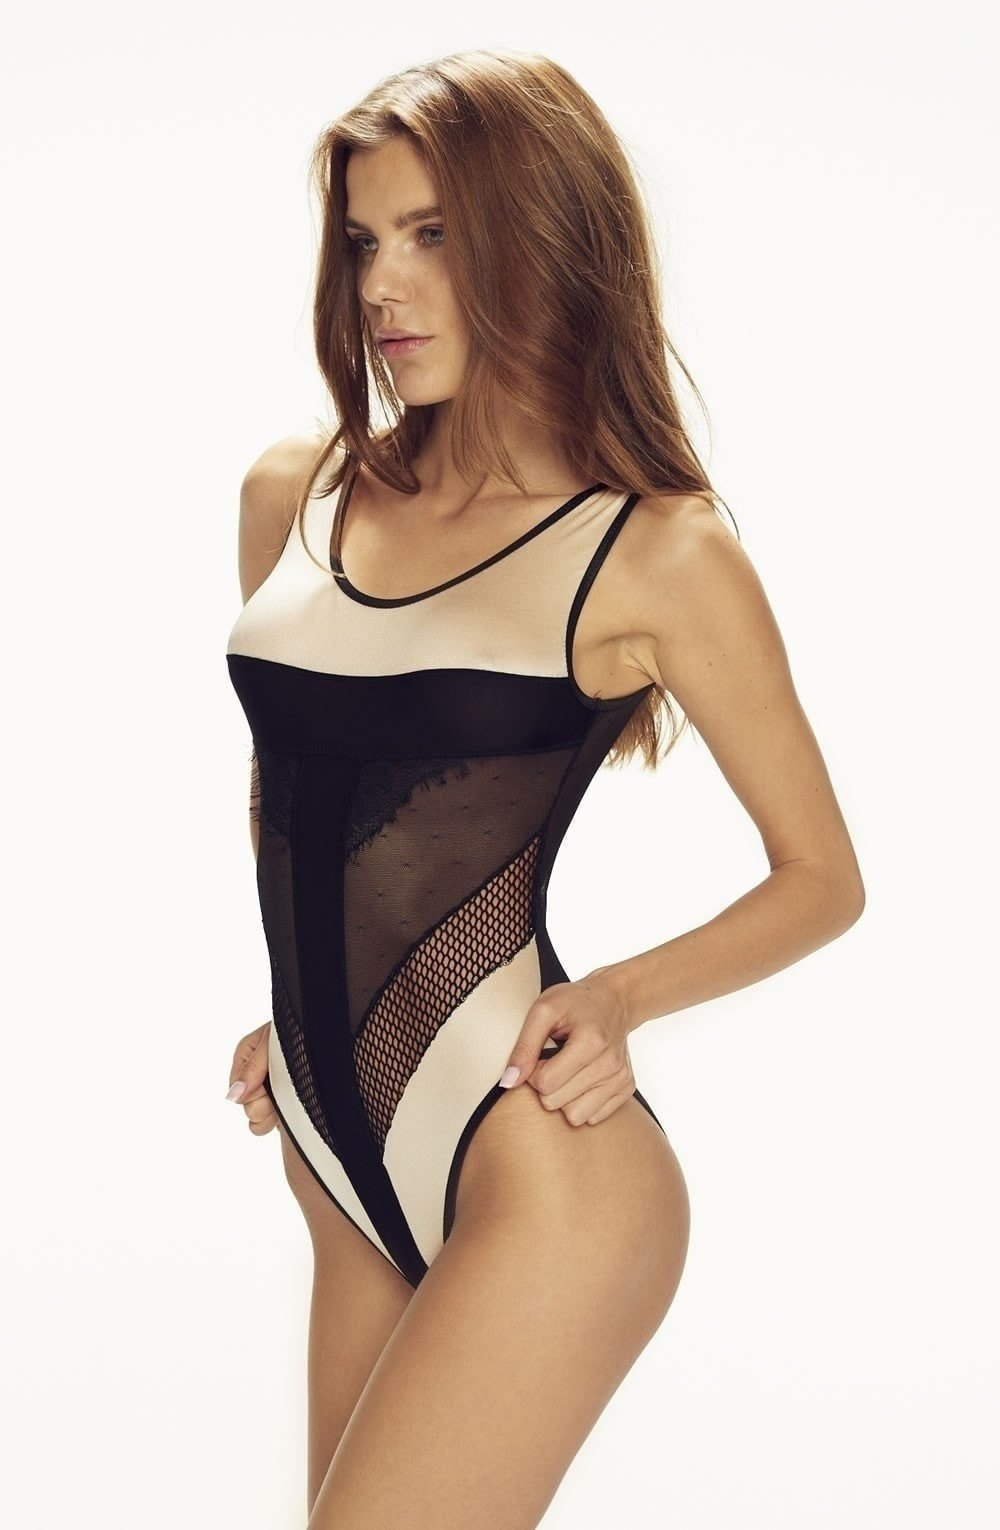 Caprice Dream Body - Bodys - Caprice Natural Fashion - Charm and Lace Boutique